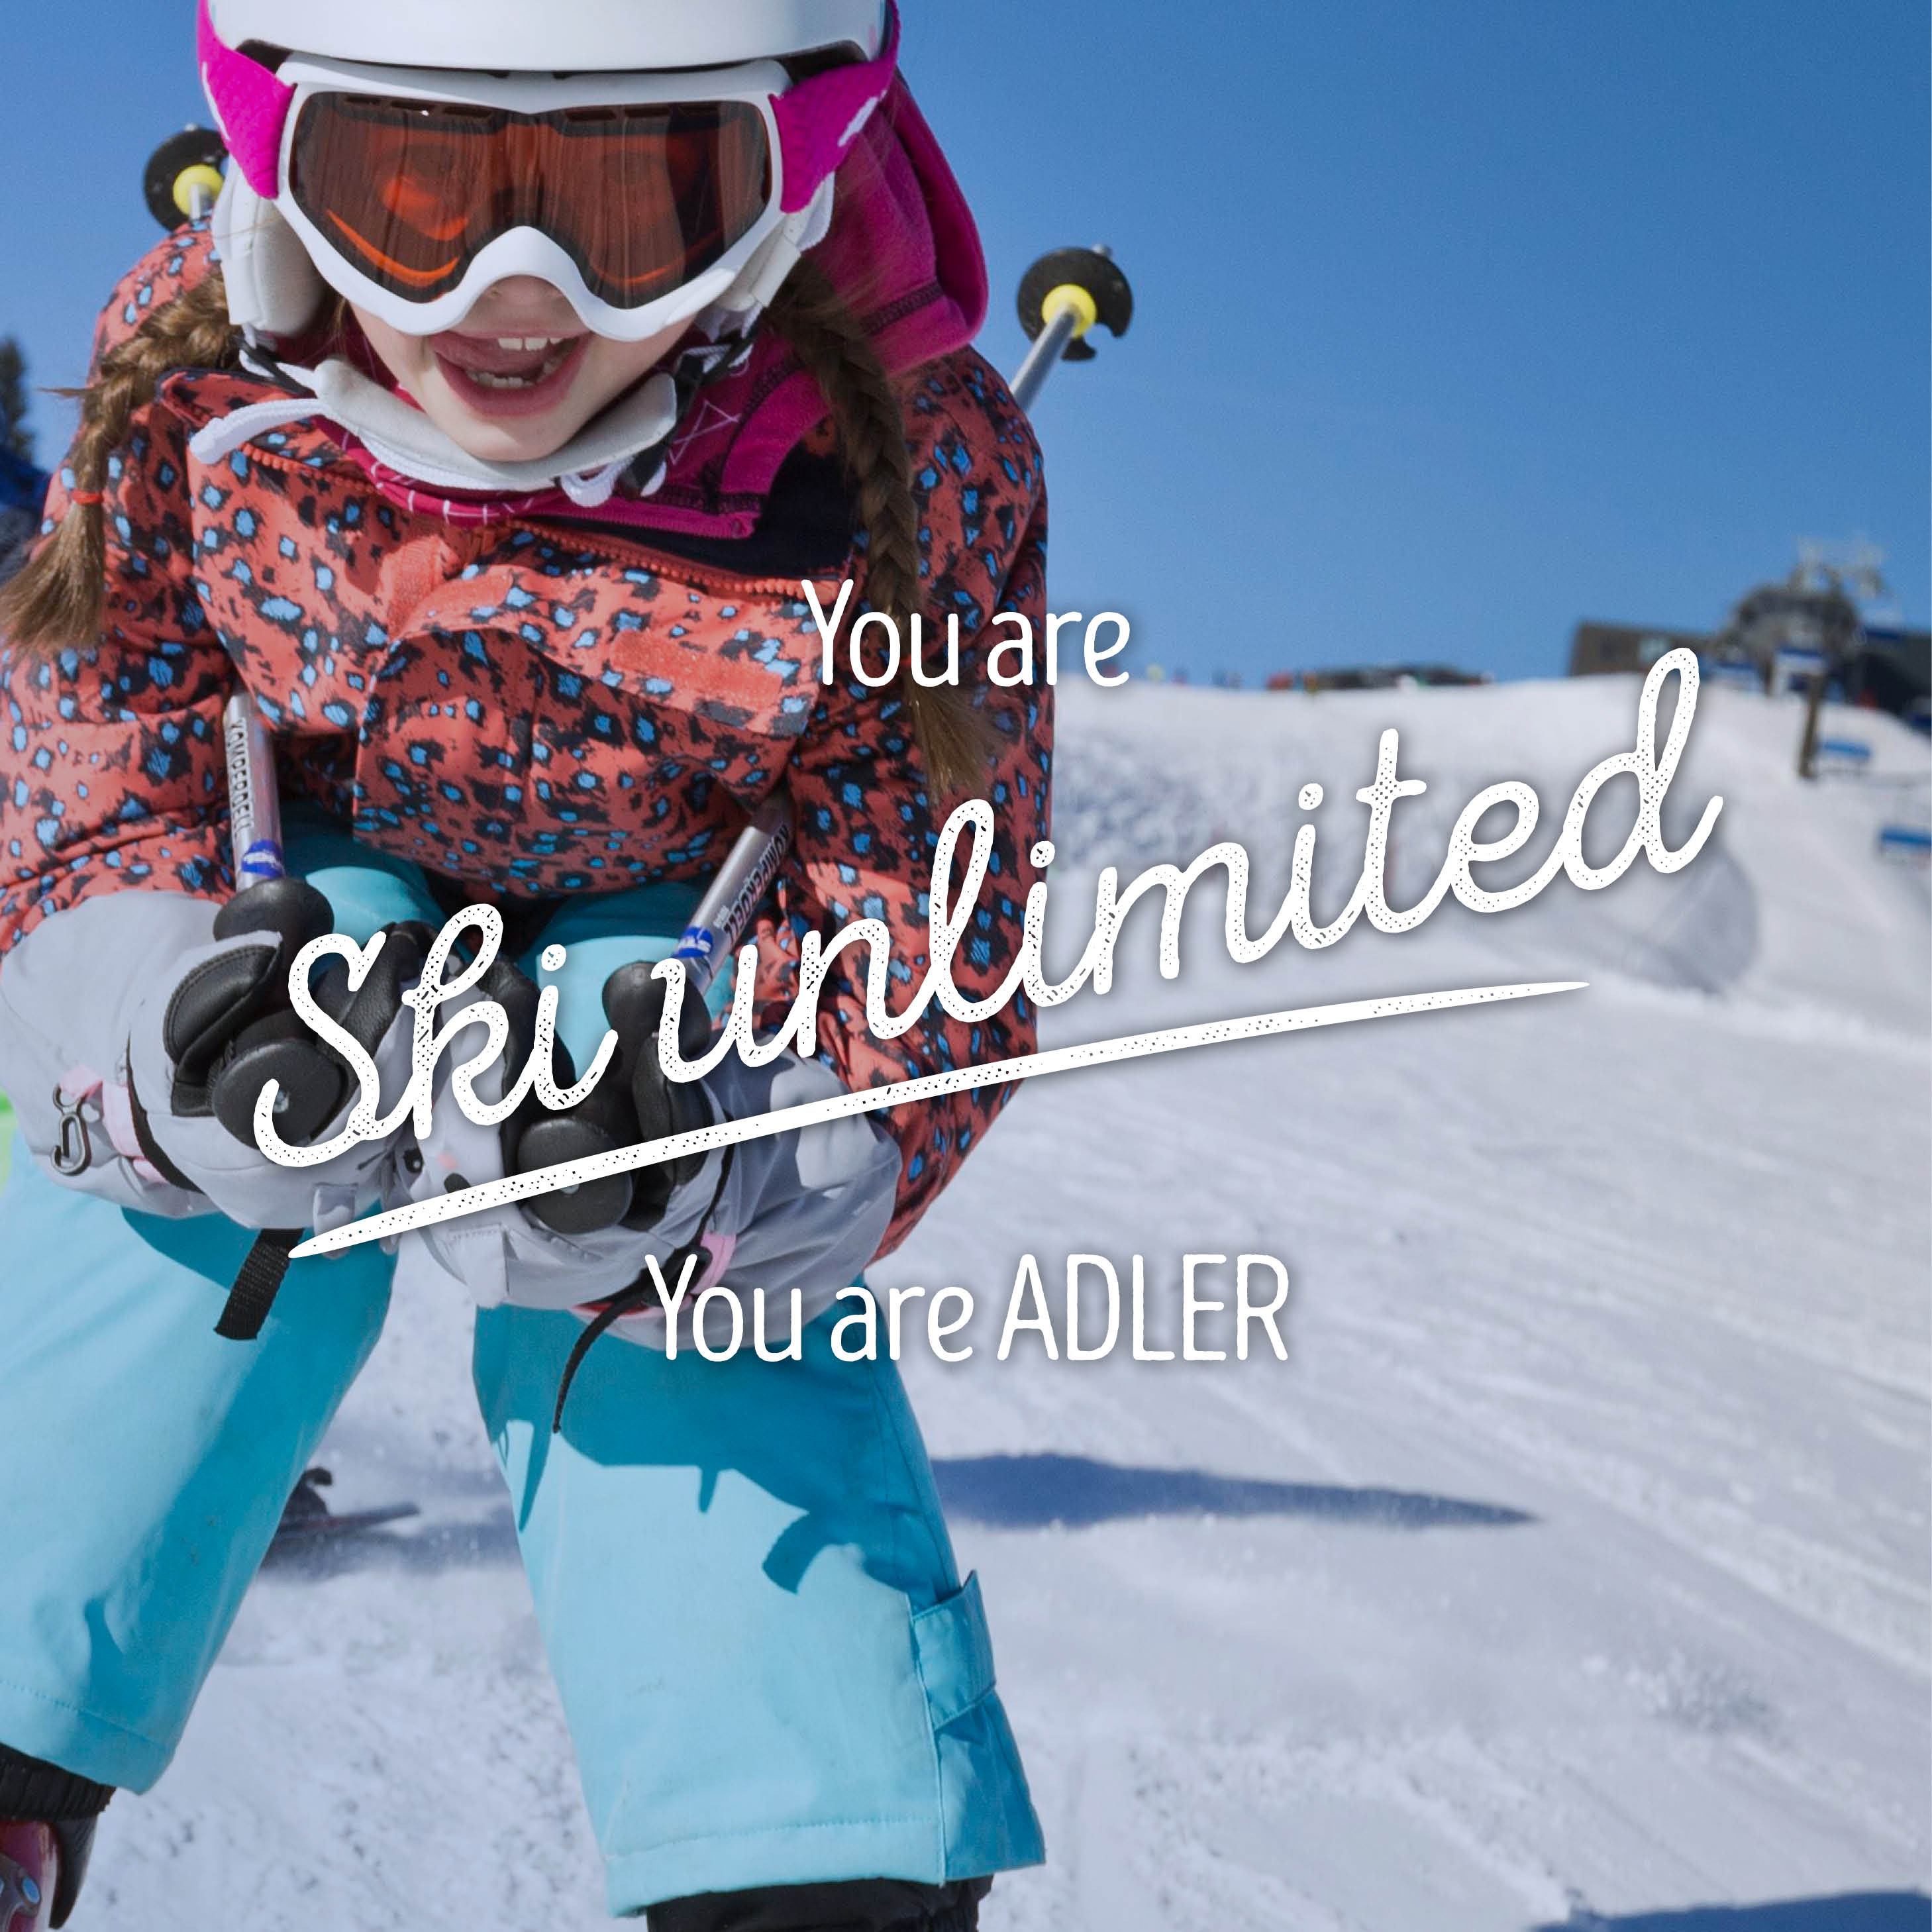 You are Ski unlimited 7 nights